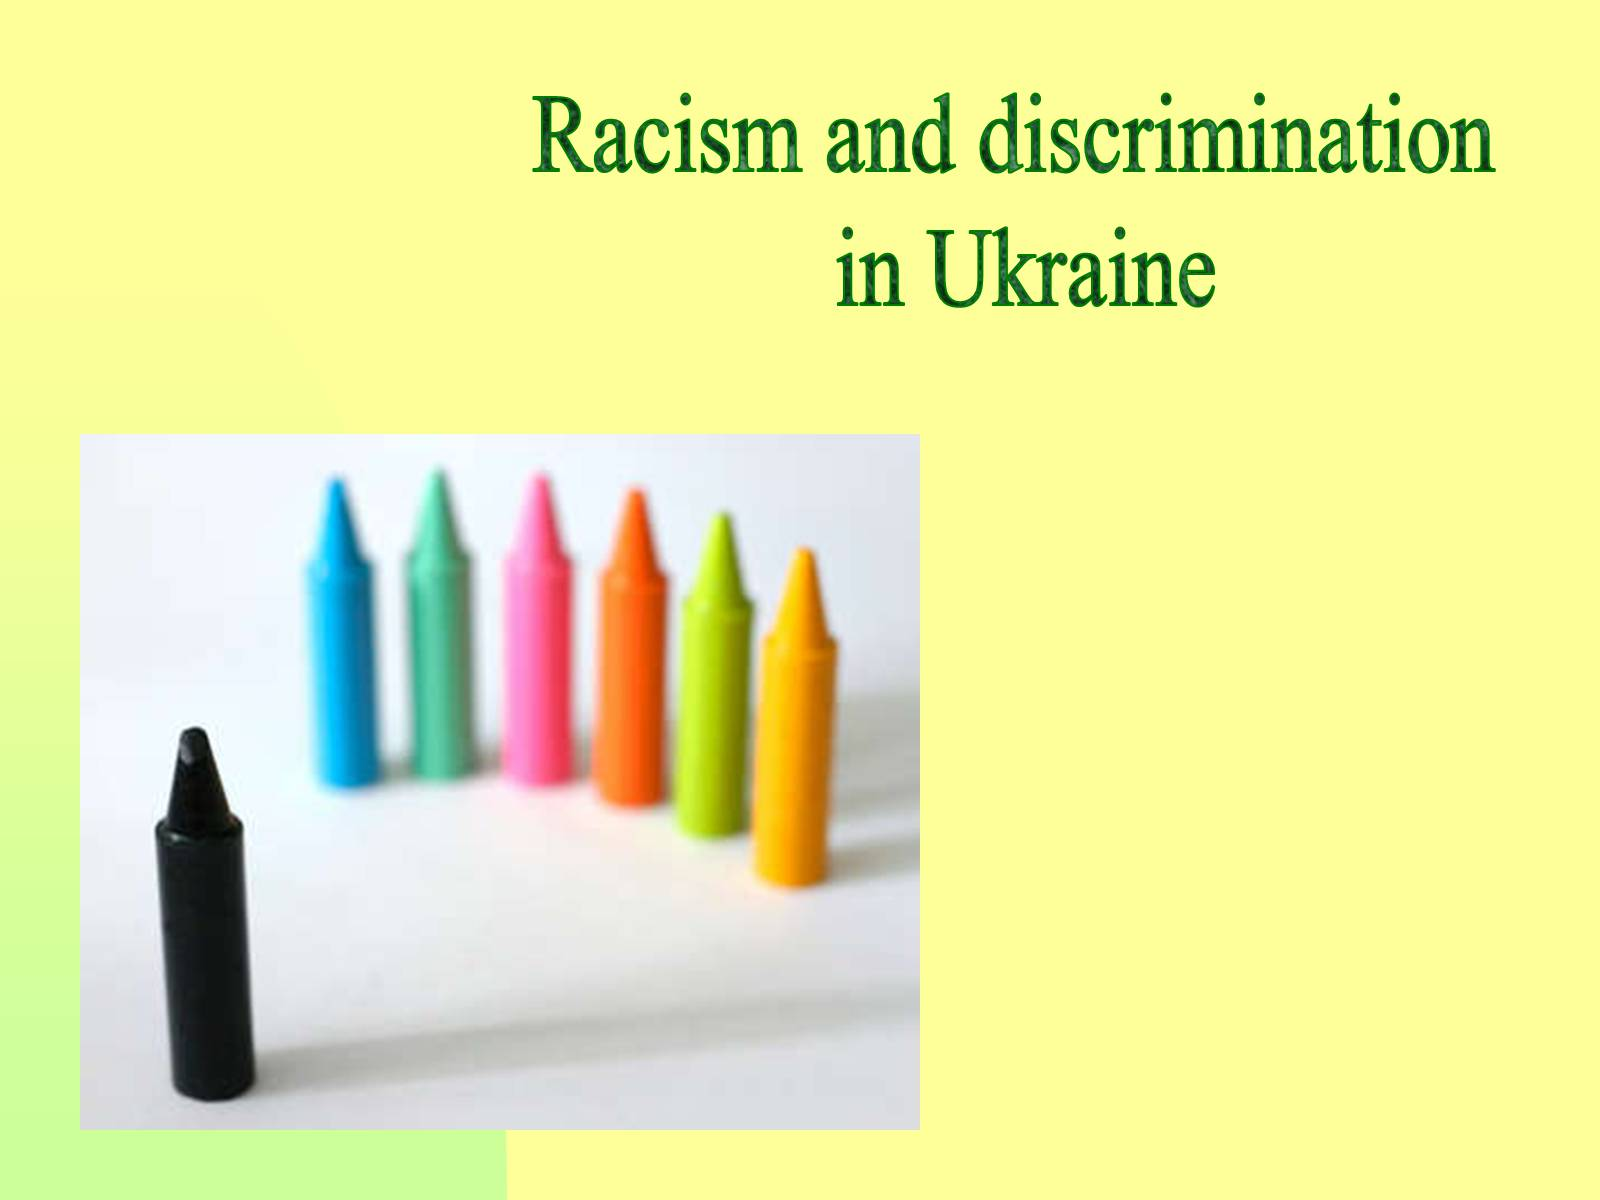 Презентація на тему «Racism and discrimination in Ukraine»